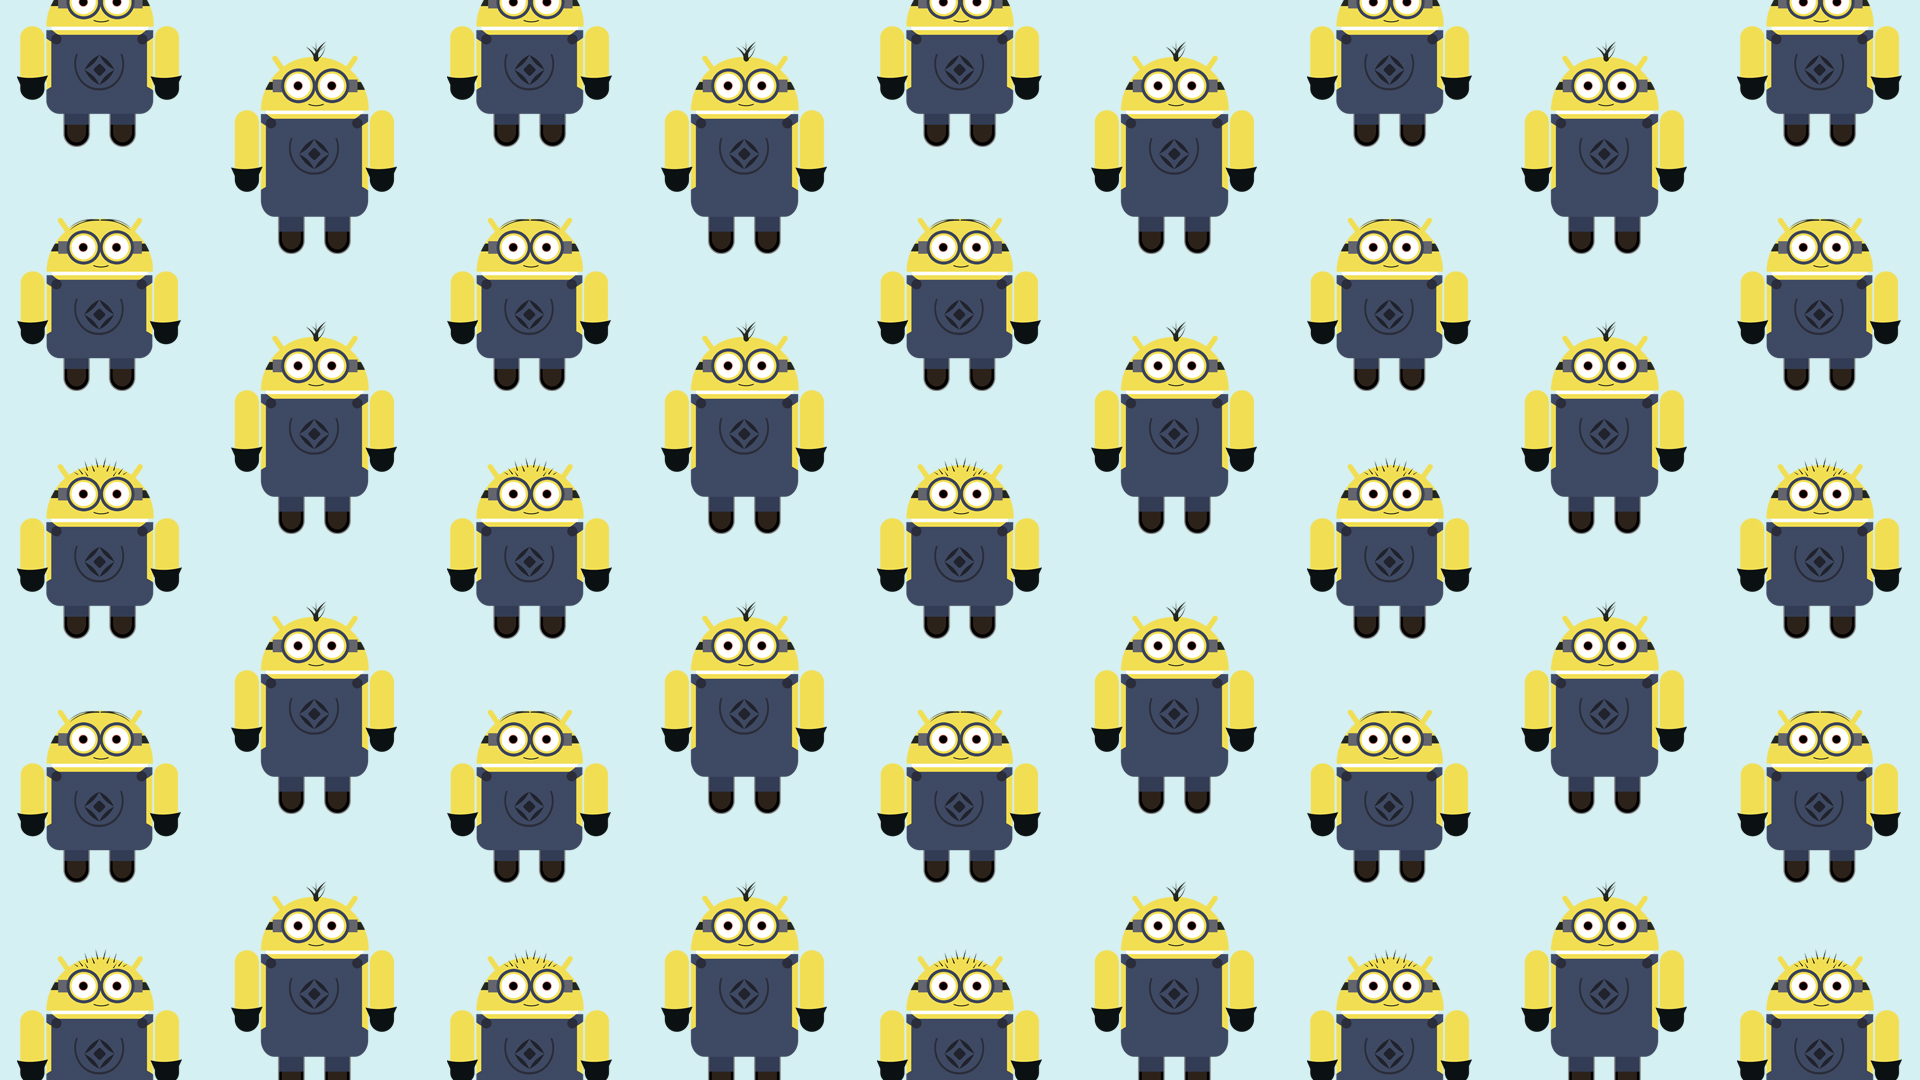 Best Images About Minions On Pinterest Bobs Stupid People 1920x1080